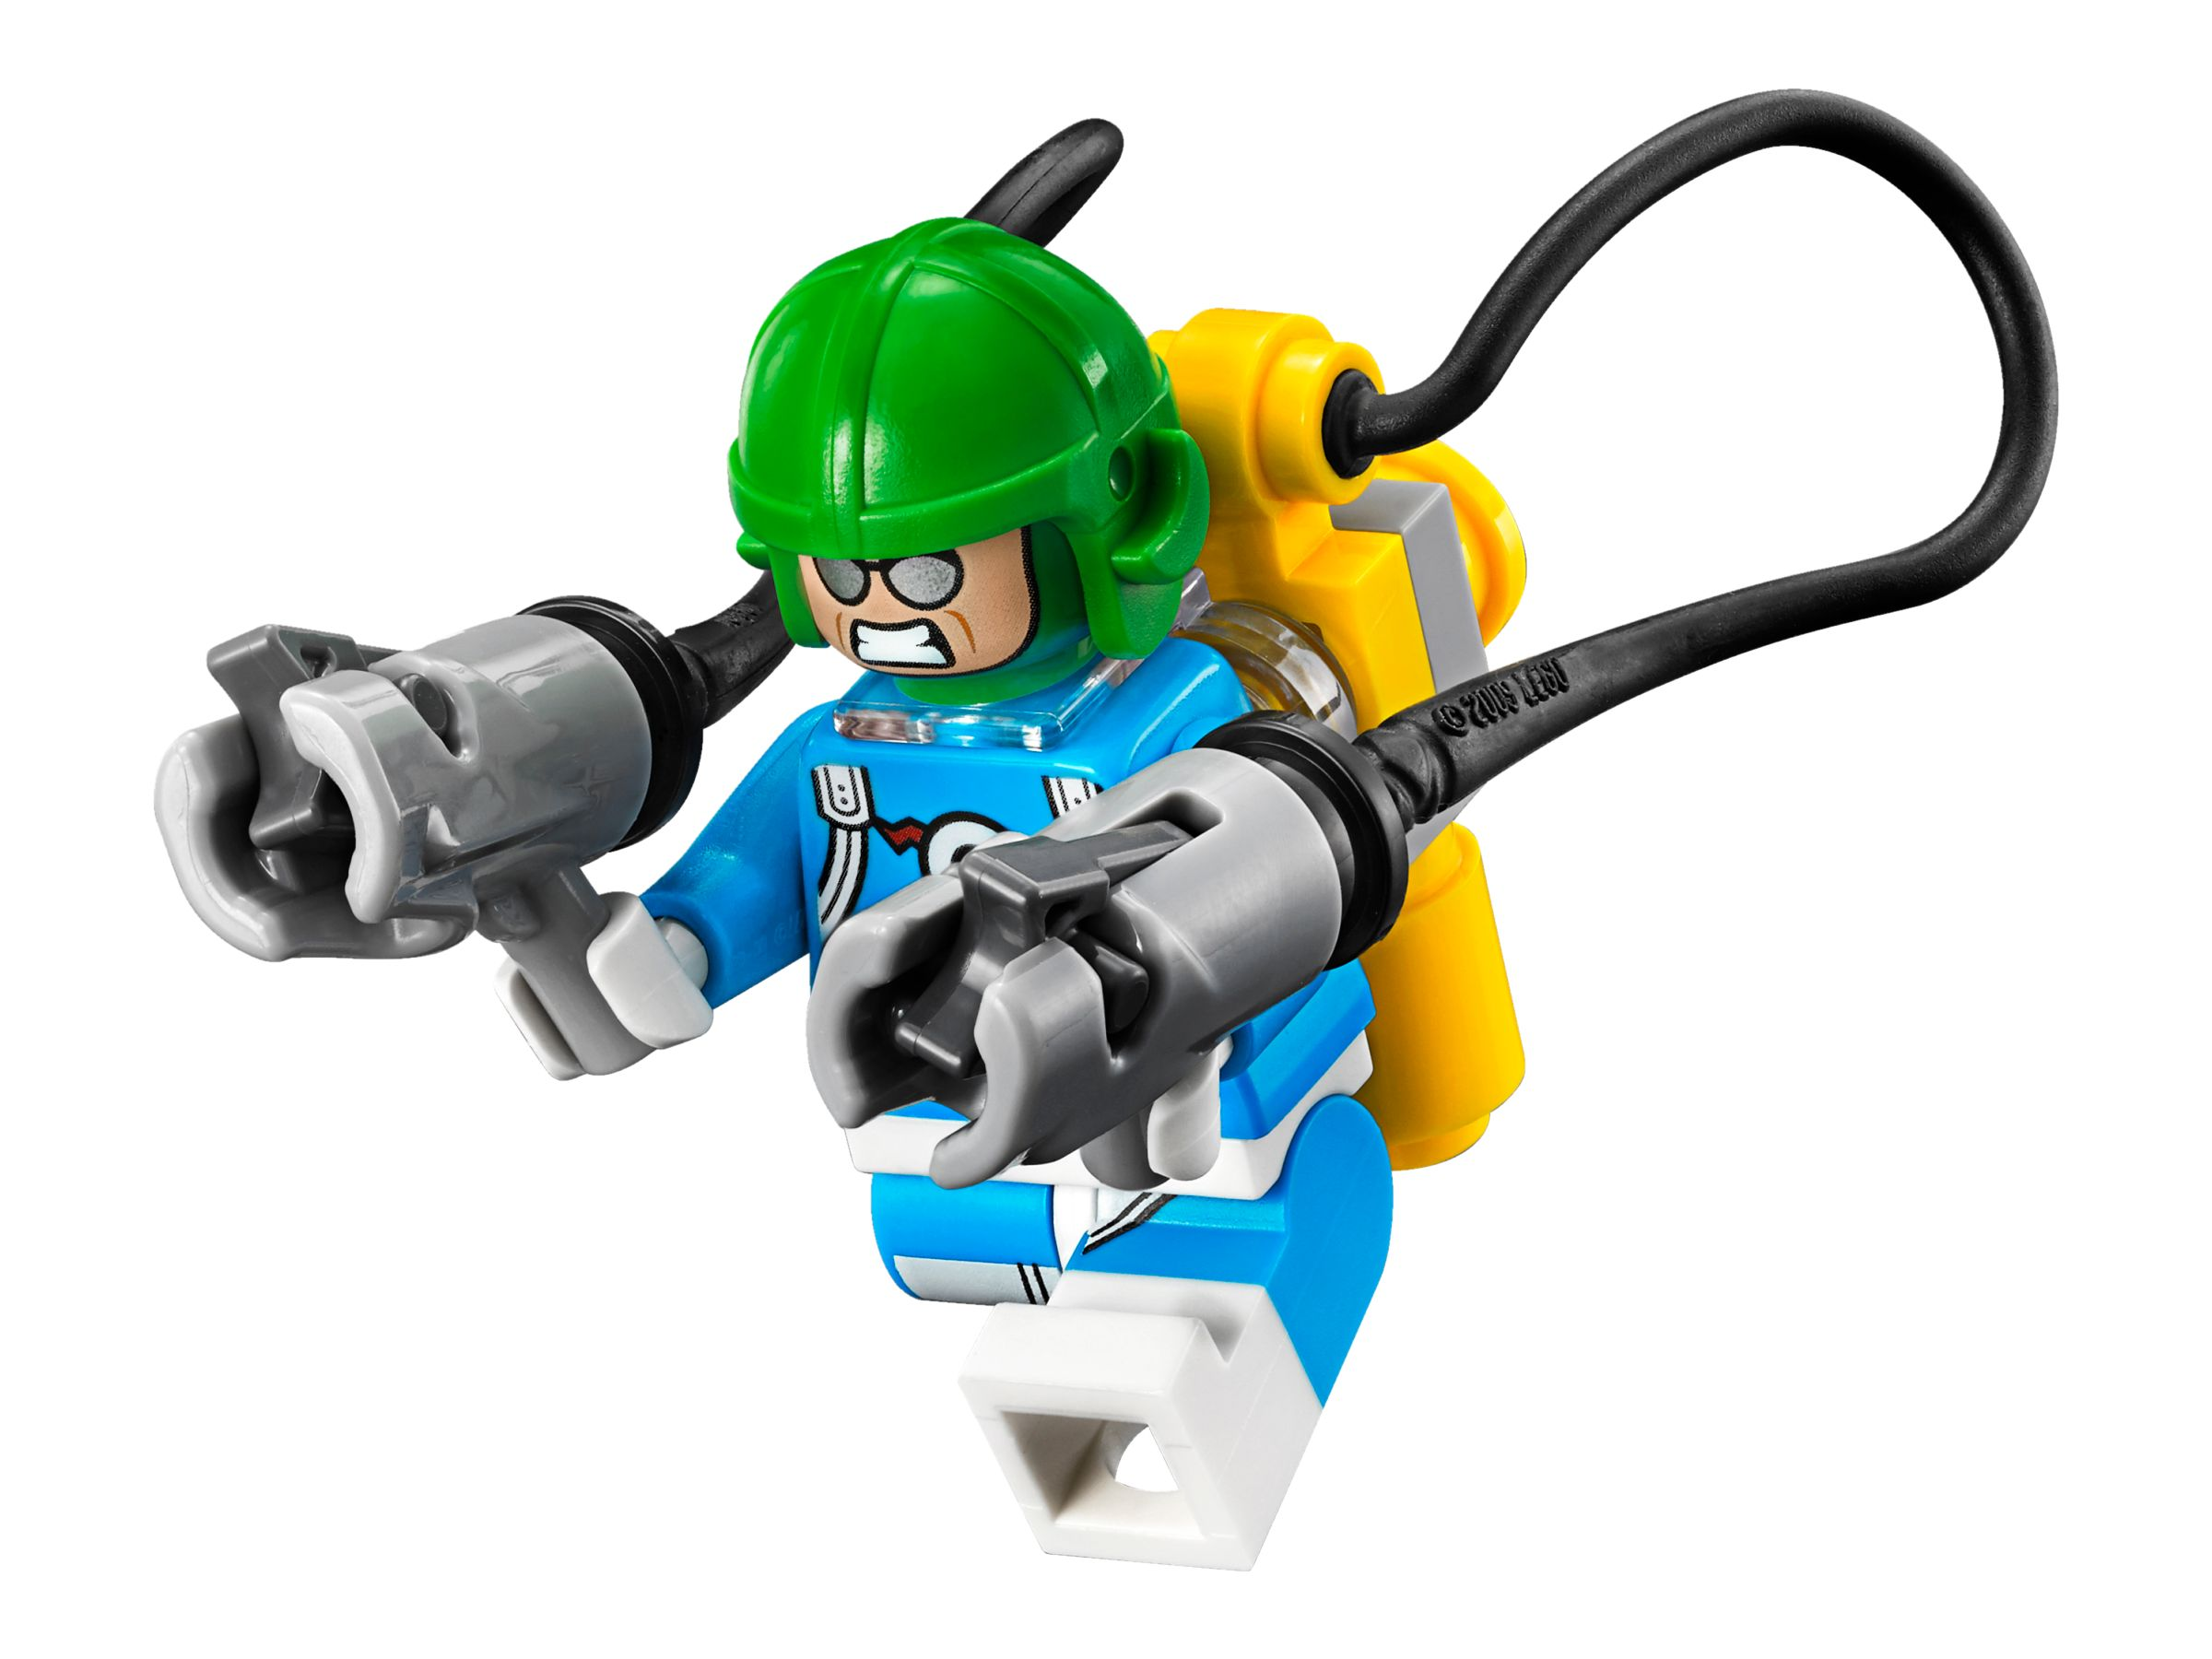 LEGO The LEGO Batman Movie 70920 Egghead bei der Roboter-Essenschlacht LEGO_70920_alt5.jpg